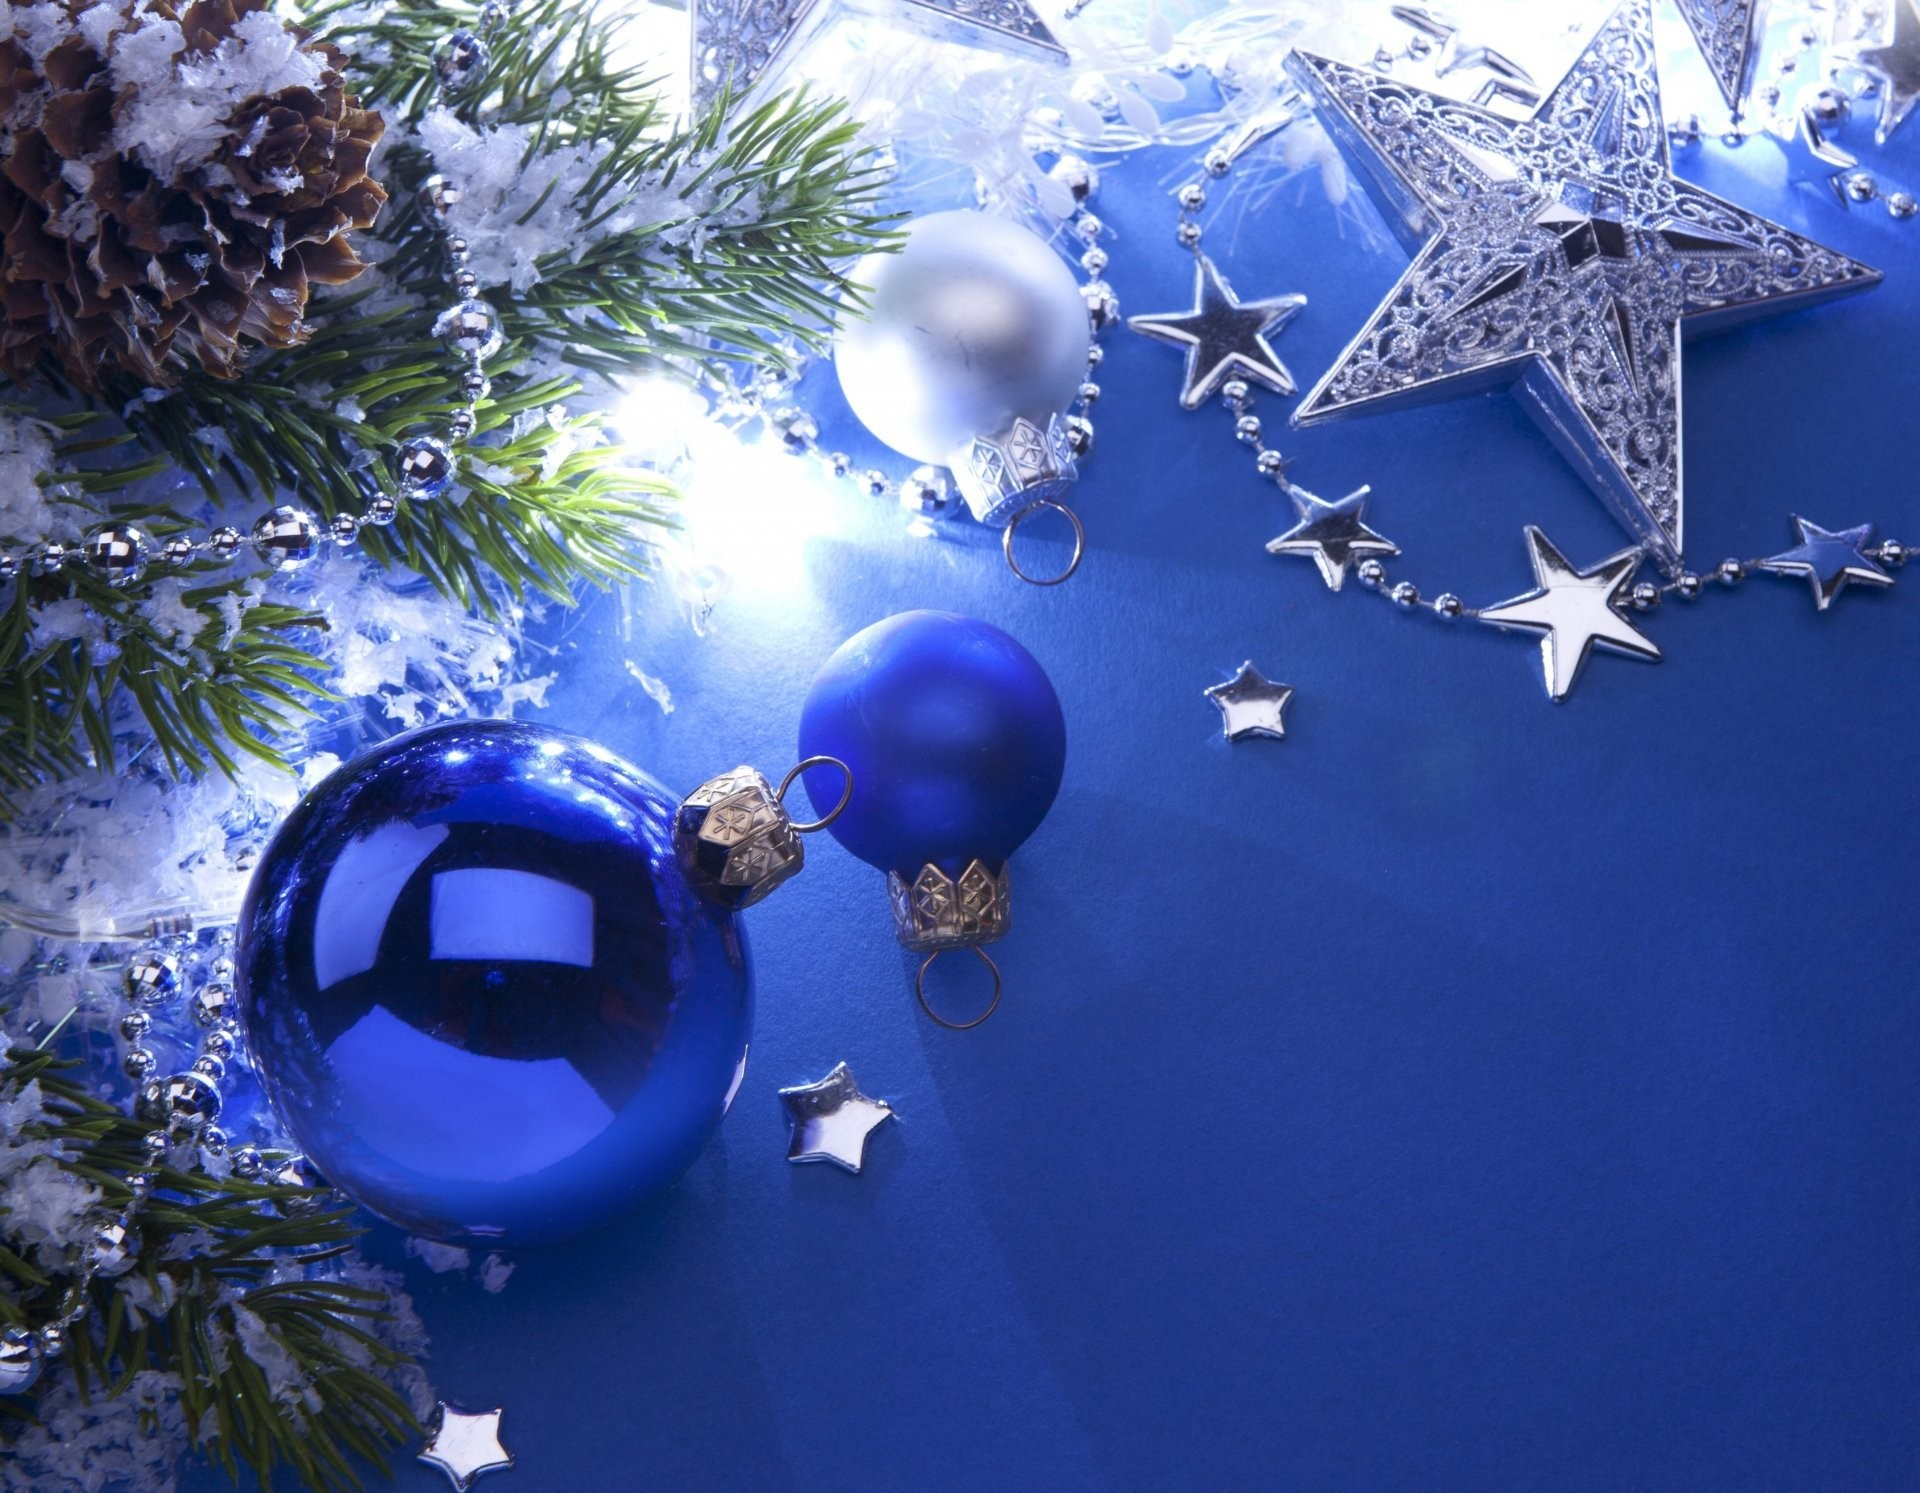 balls bulbs blue white star silver christmas tree cone branches christmas  toys new year christmas new